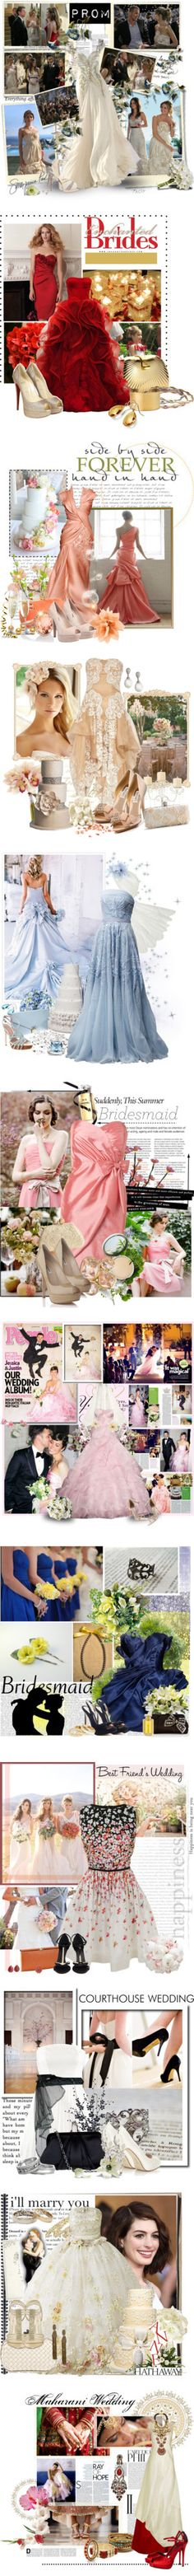 """""""Wedding day!!"""" by bubble-star ❤ liked on Polyvore"""